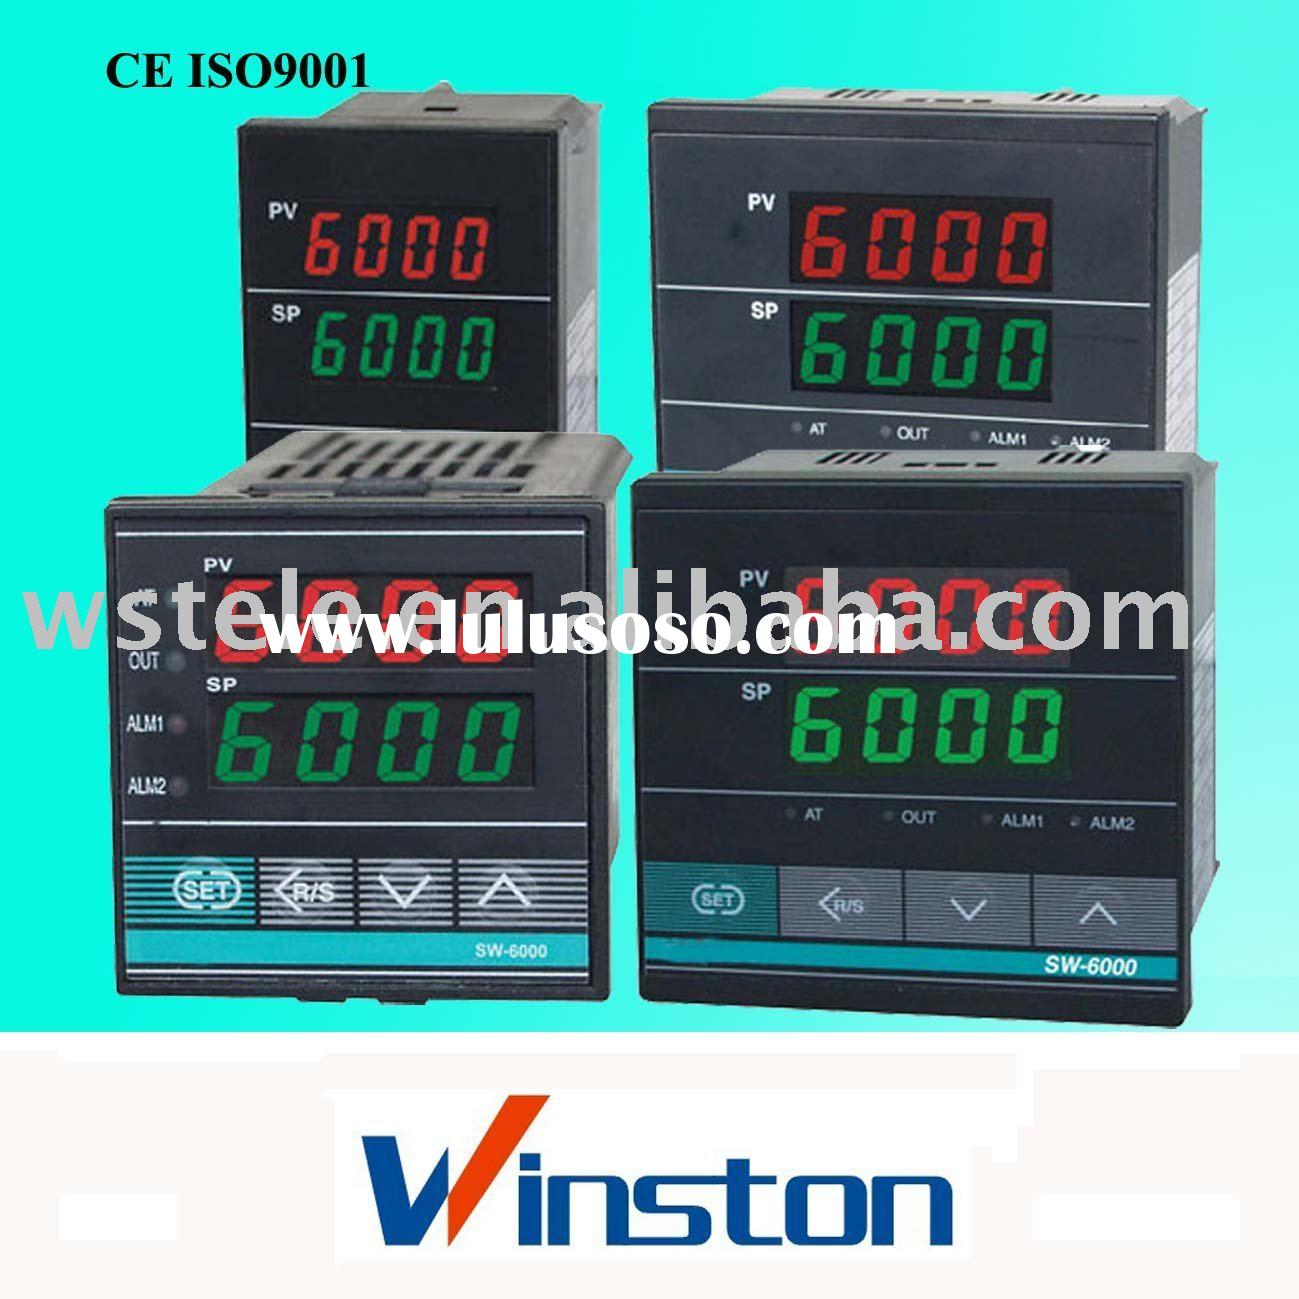 controllers chb series intelligent temperature controllers use  #08C3B3